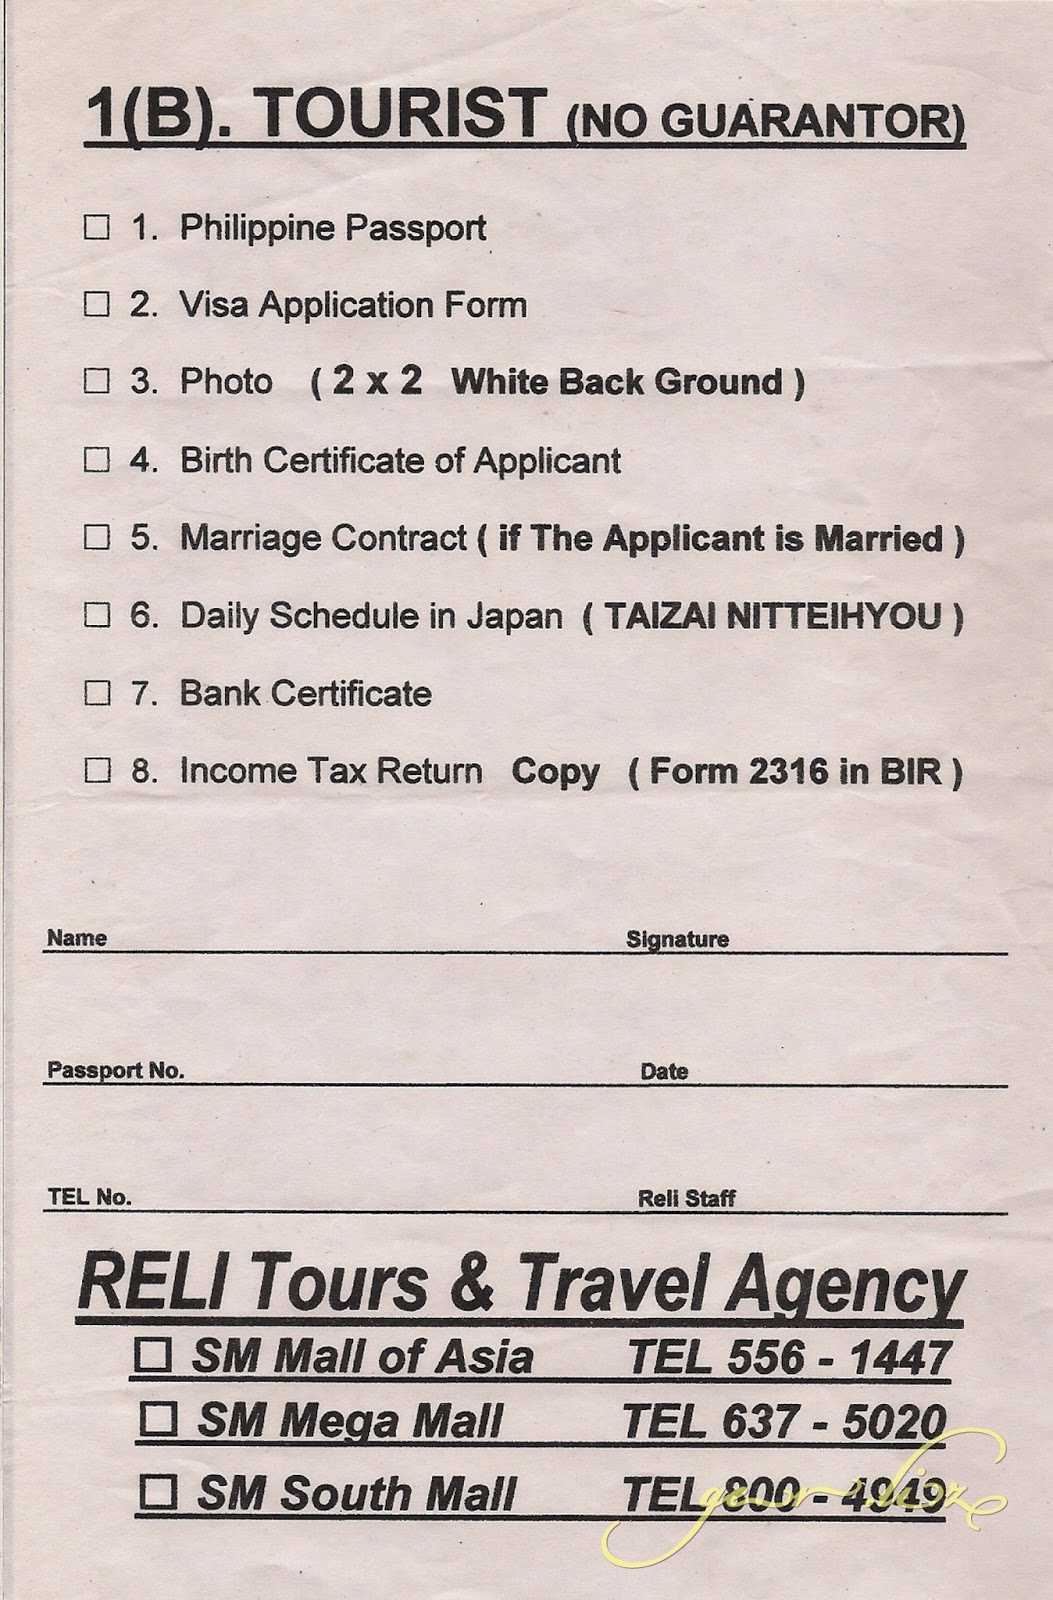 Applying for a japan visa 2012 trips by liz filled up application form 2x2 photo with white background glued to the application form passport birth certificate from nso aiddatafo Gallery